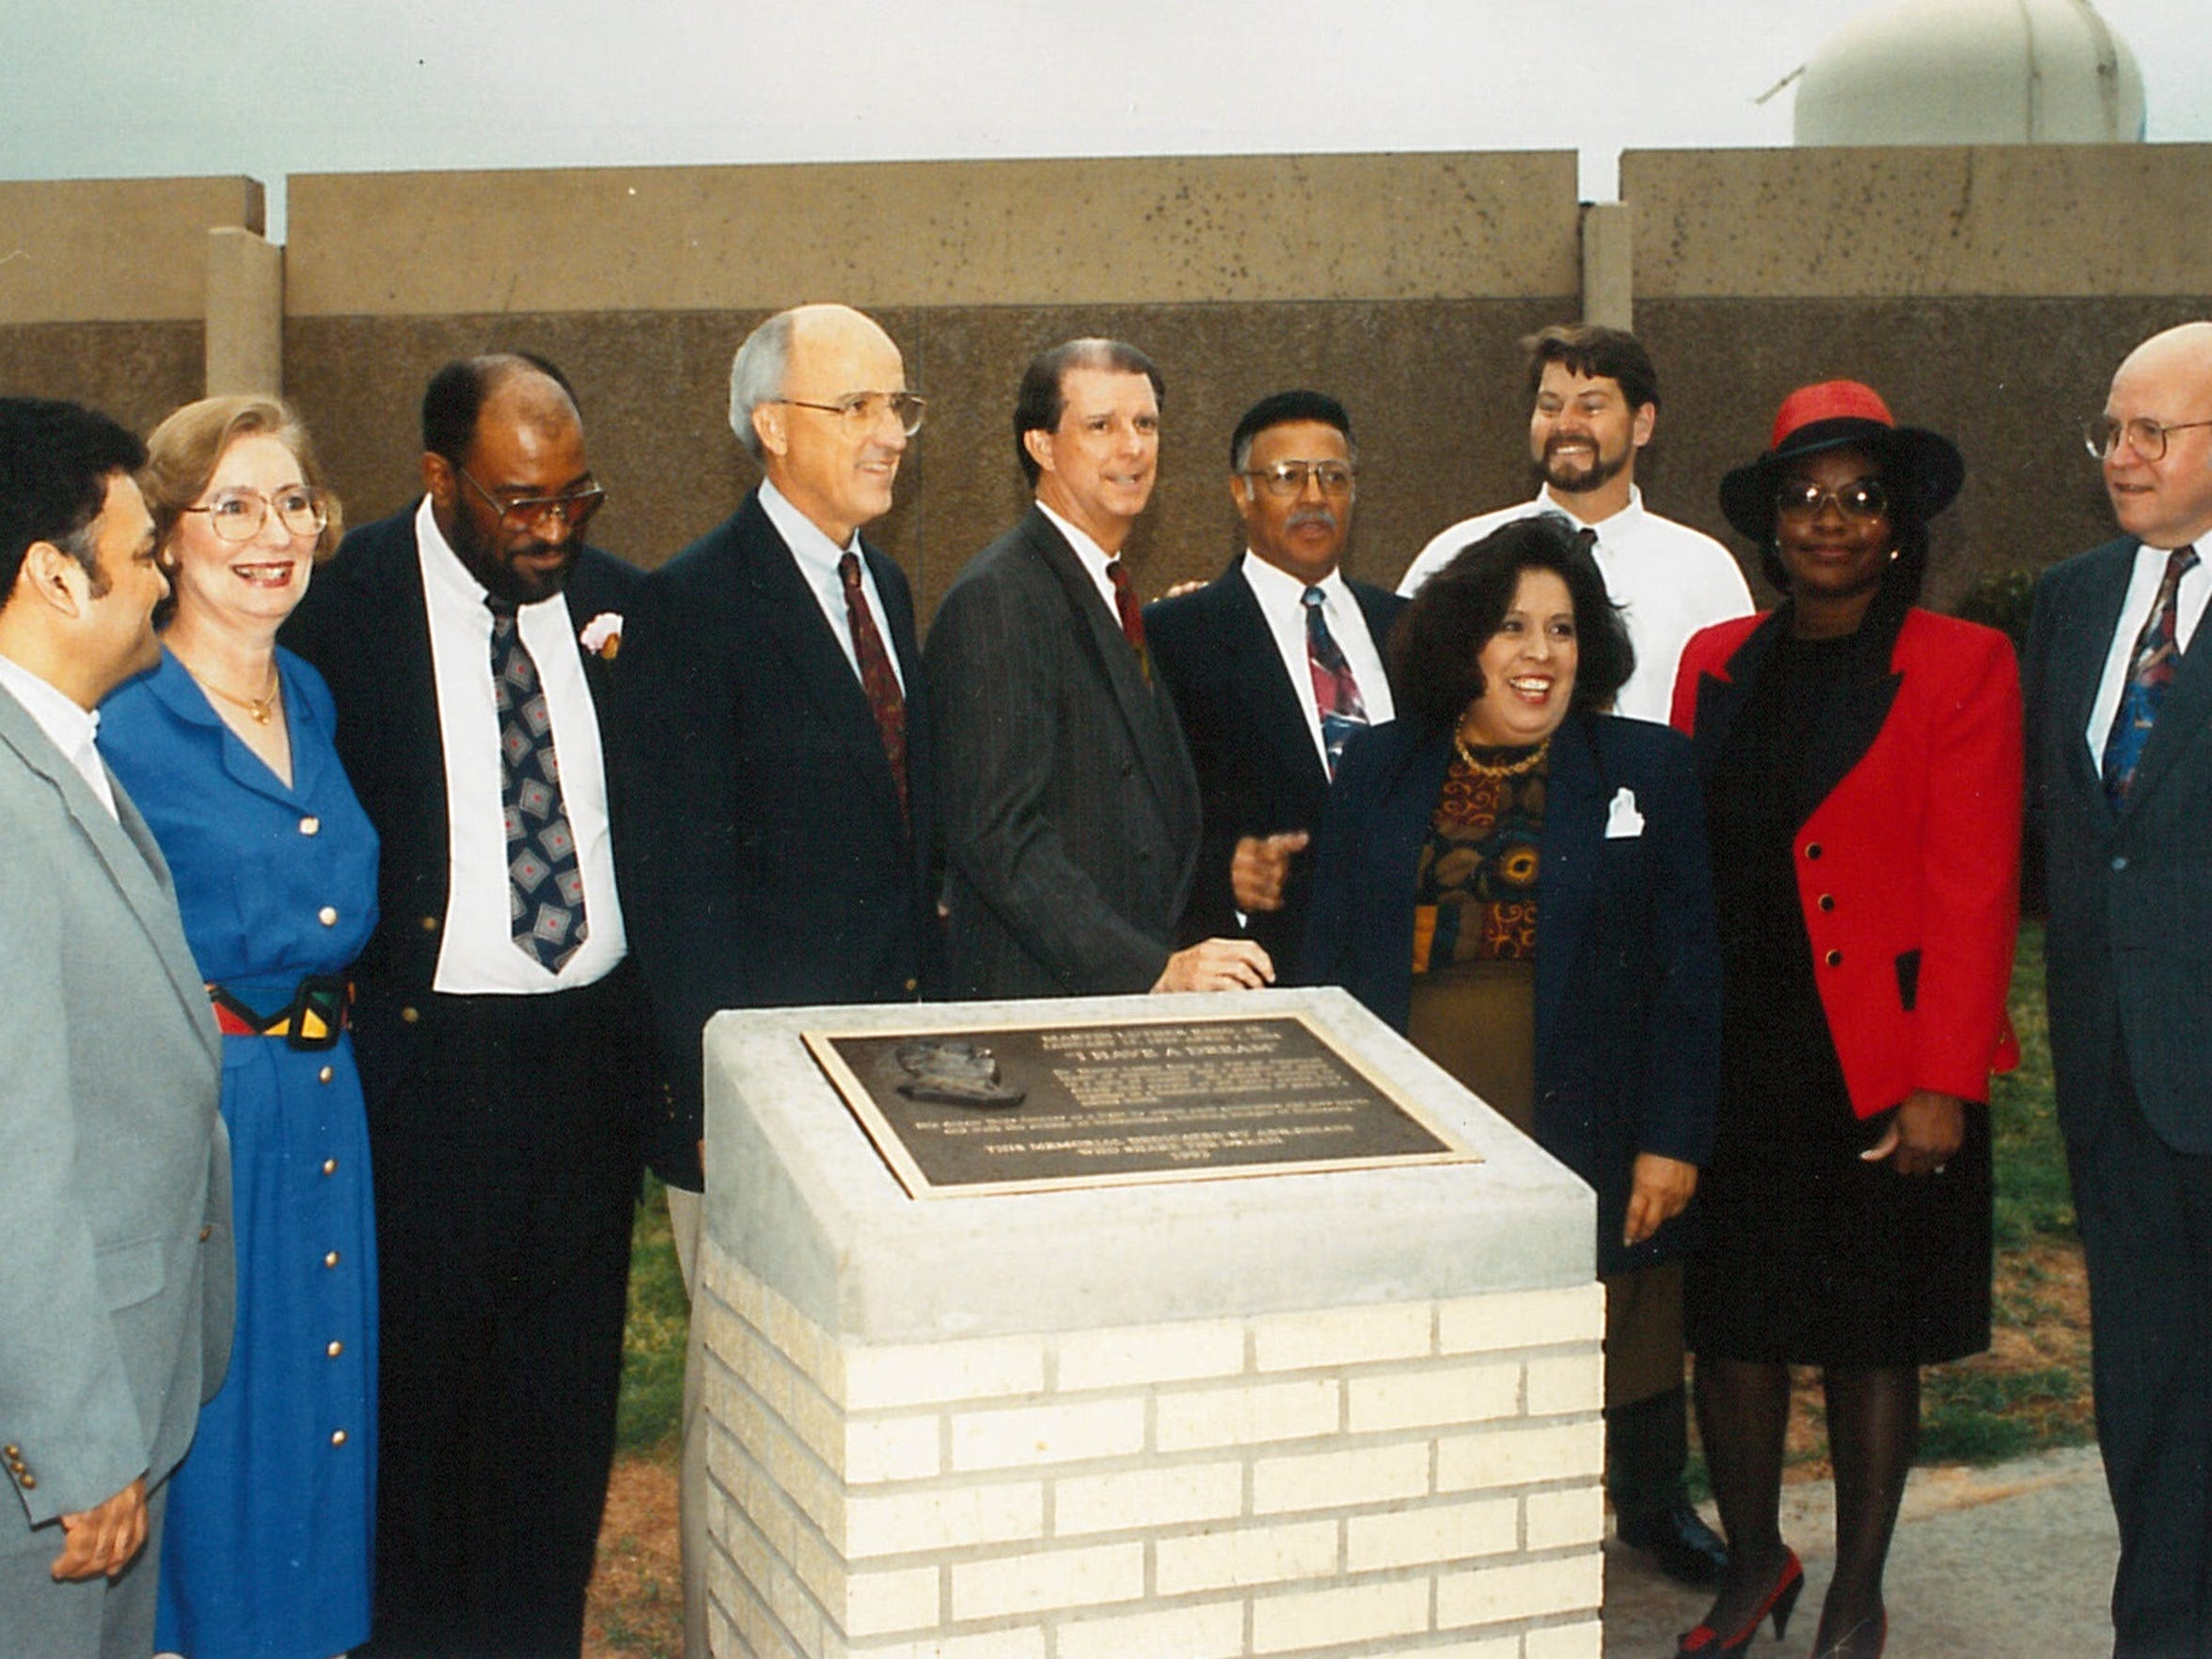 From left: Victor Flores, Lynda Calcote, Rufus Johnson, Mayor Gary McCaleb, City Manager Jim Blagg, the Rev. Leo F. Scott, Carol Martinez, Tom Martin, Neomia Banks and Wayne Roy were photographed at the dedication of a East Highway 80 bridge over Cedar Creek at the Martin Luther King Jr. Memorial Bridge in 1993.